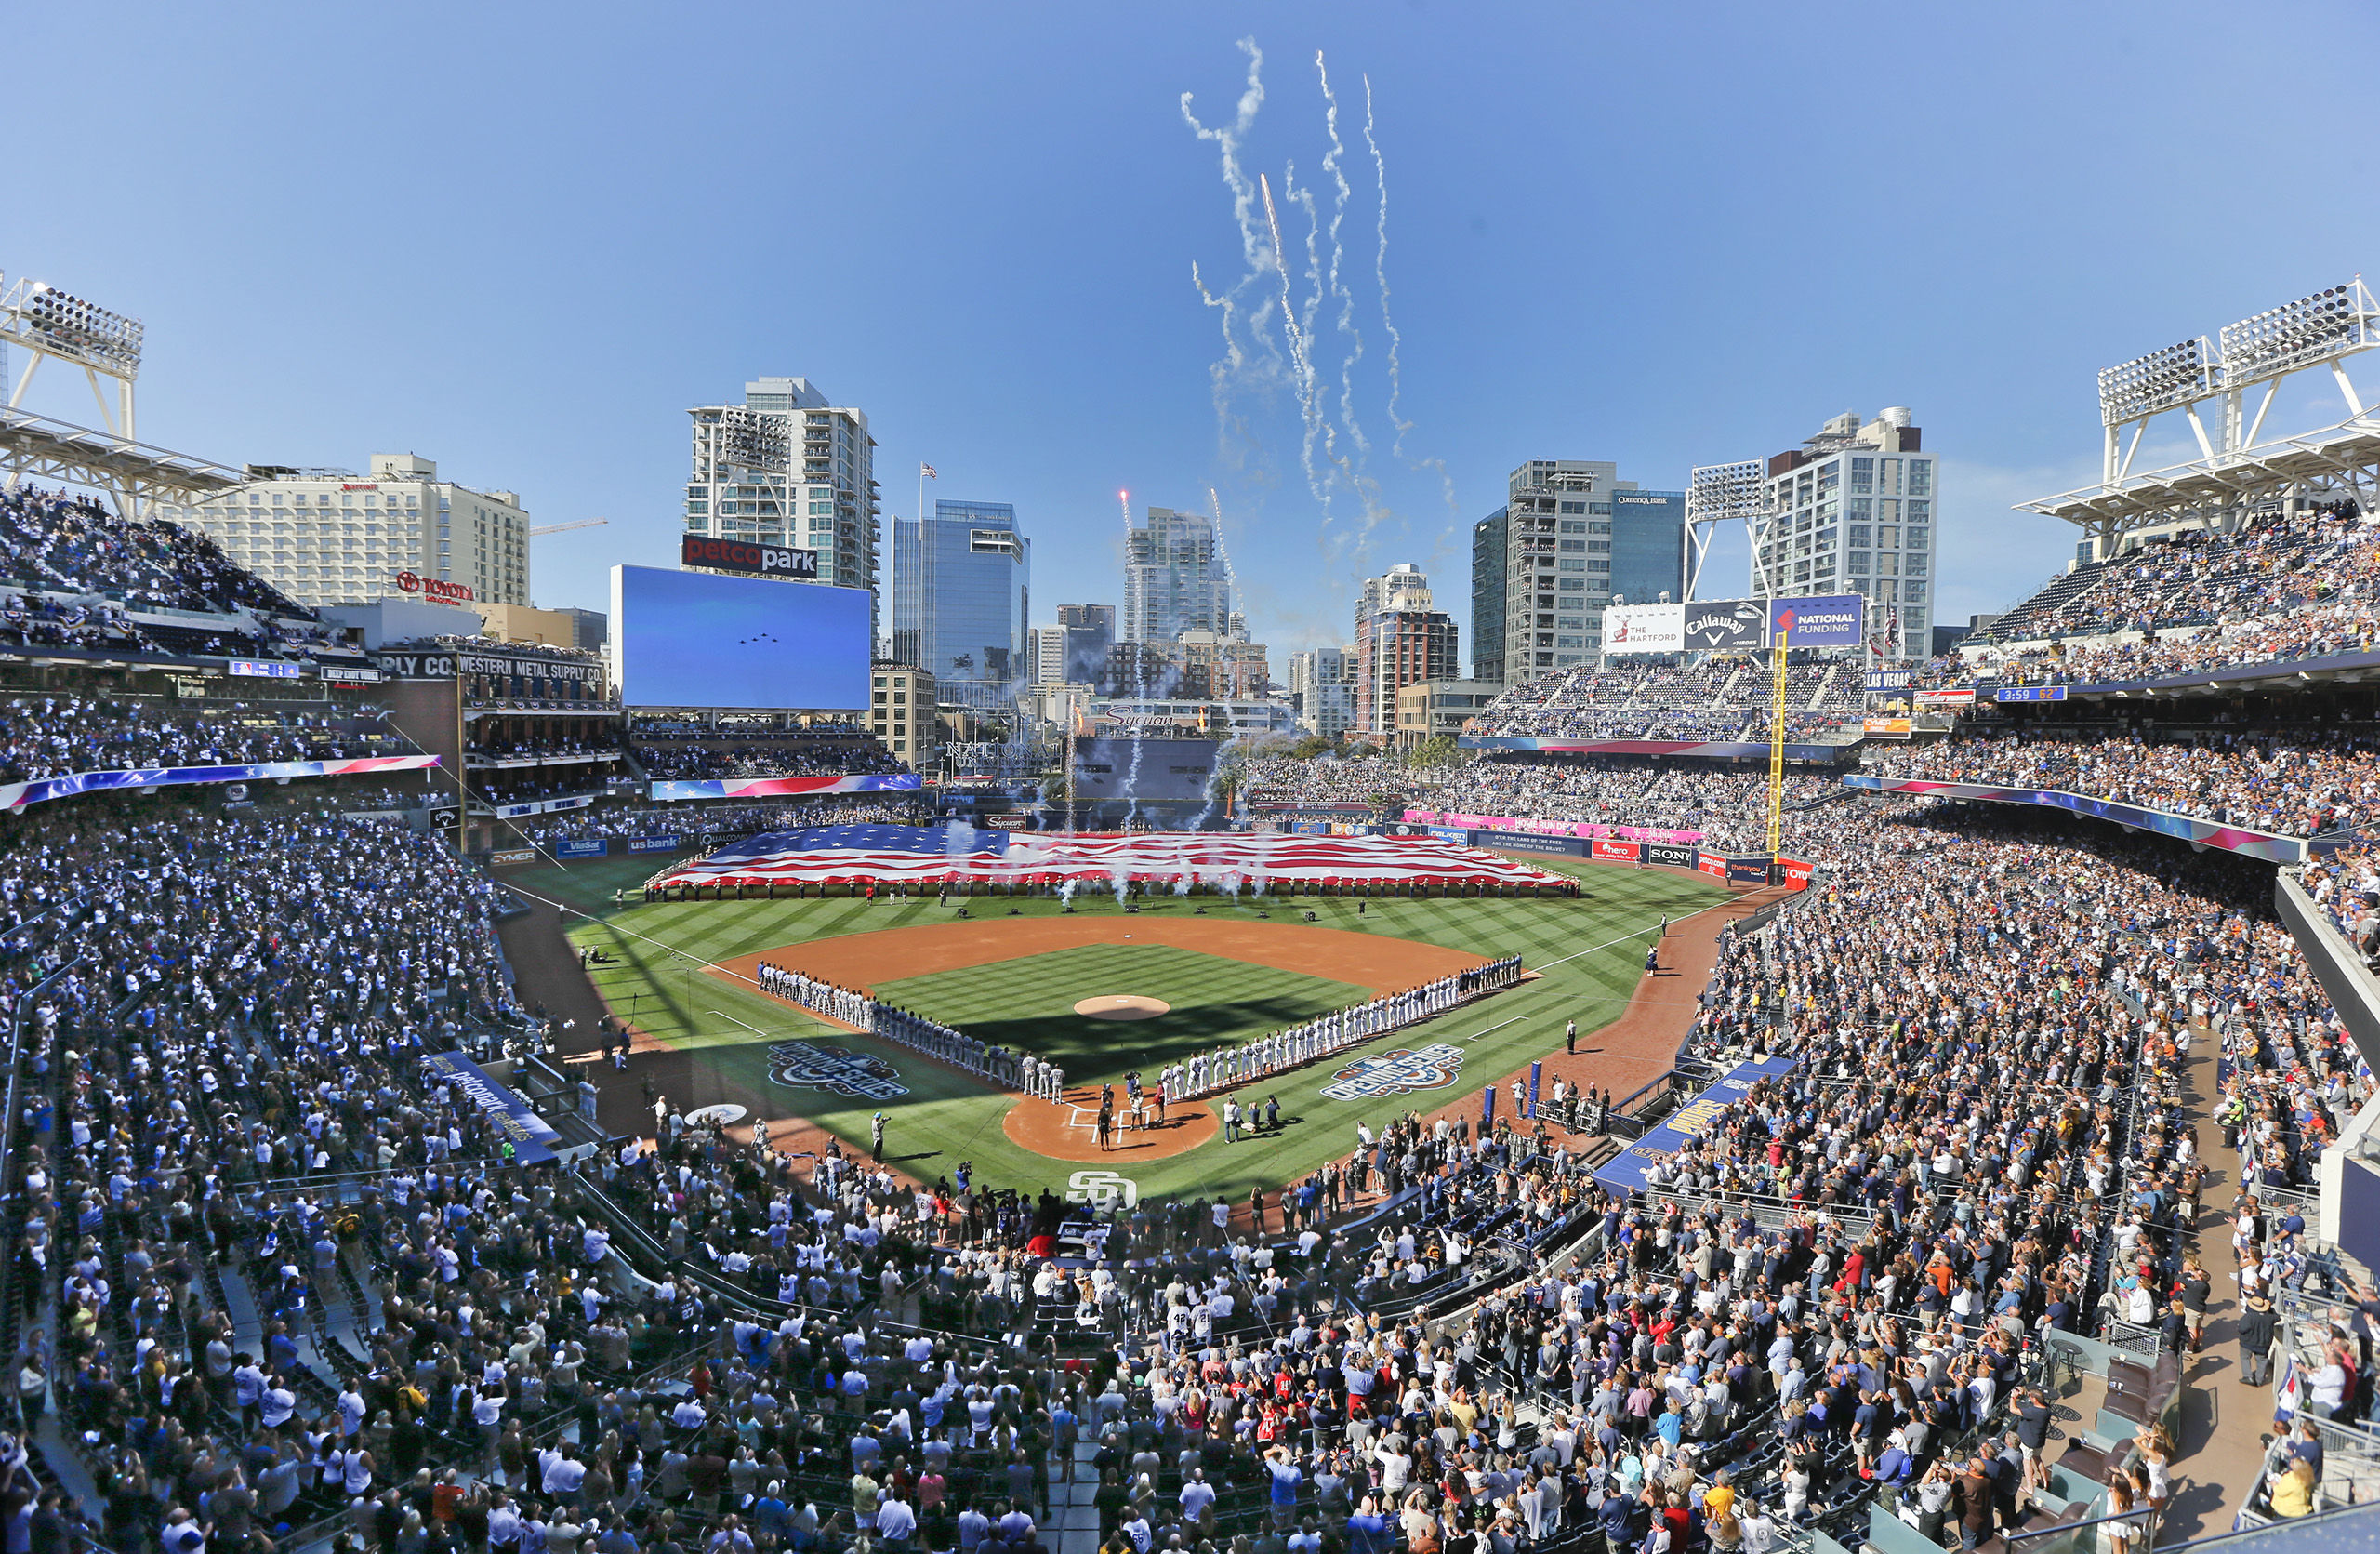 Opening day ceremonies are performed at Petco Park before a baseball game between the Los Angeles Dodgers and the San Diego Padres in San Diego, April 4, 2016.